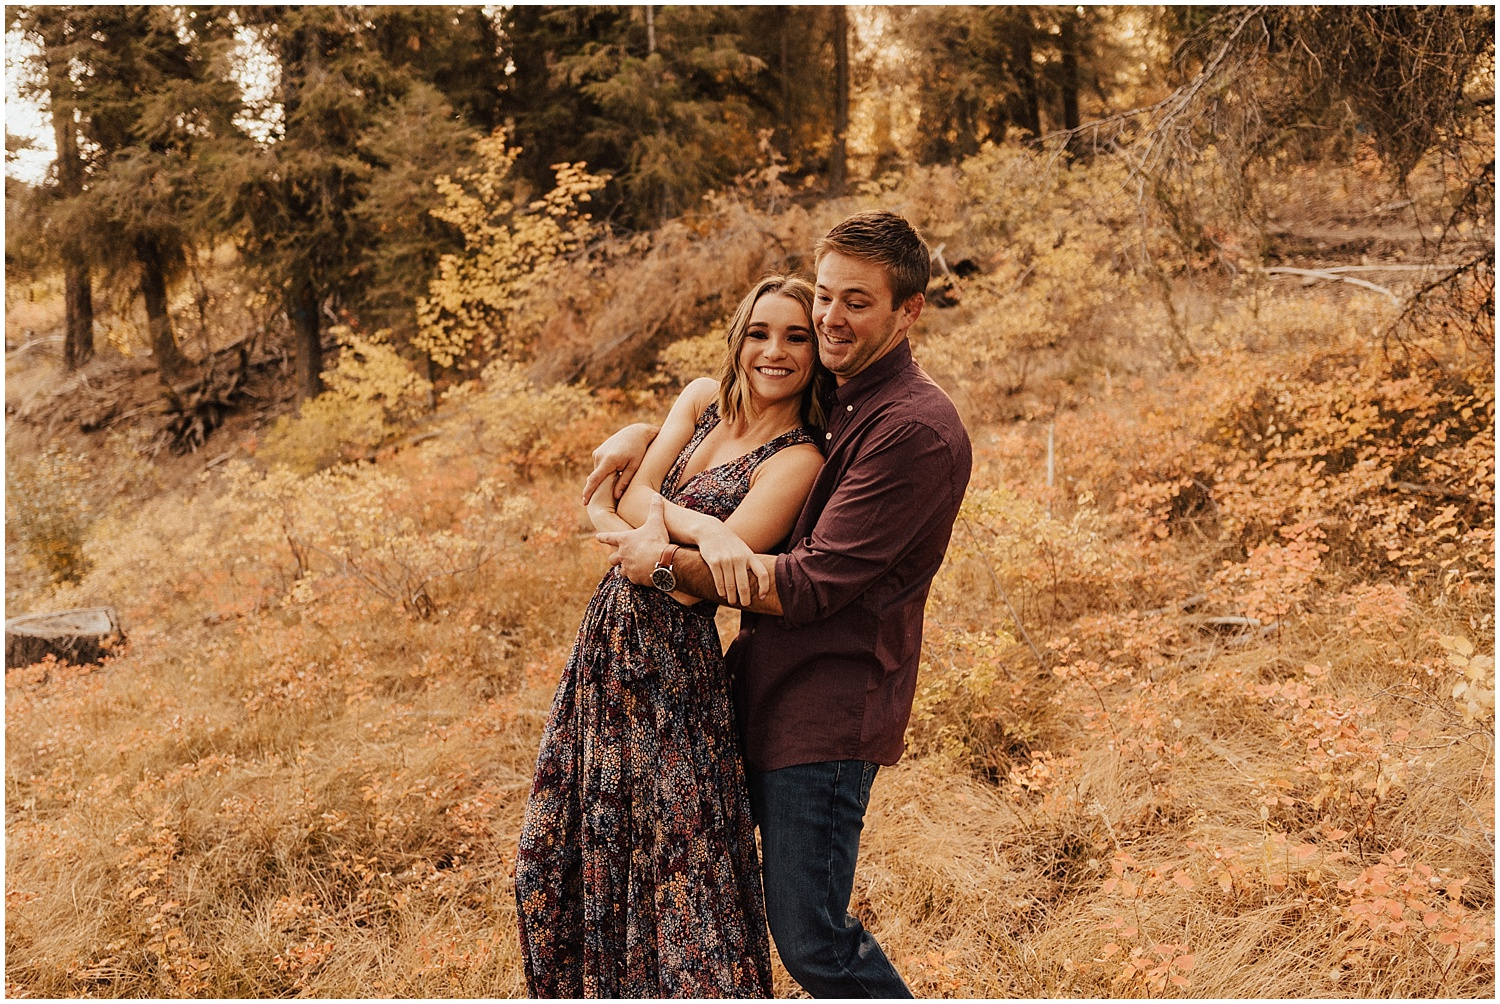 sunrise-mountain-engagement-session-boise-idaho20.jpg